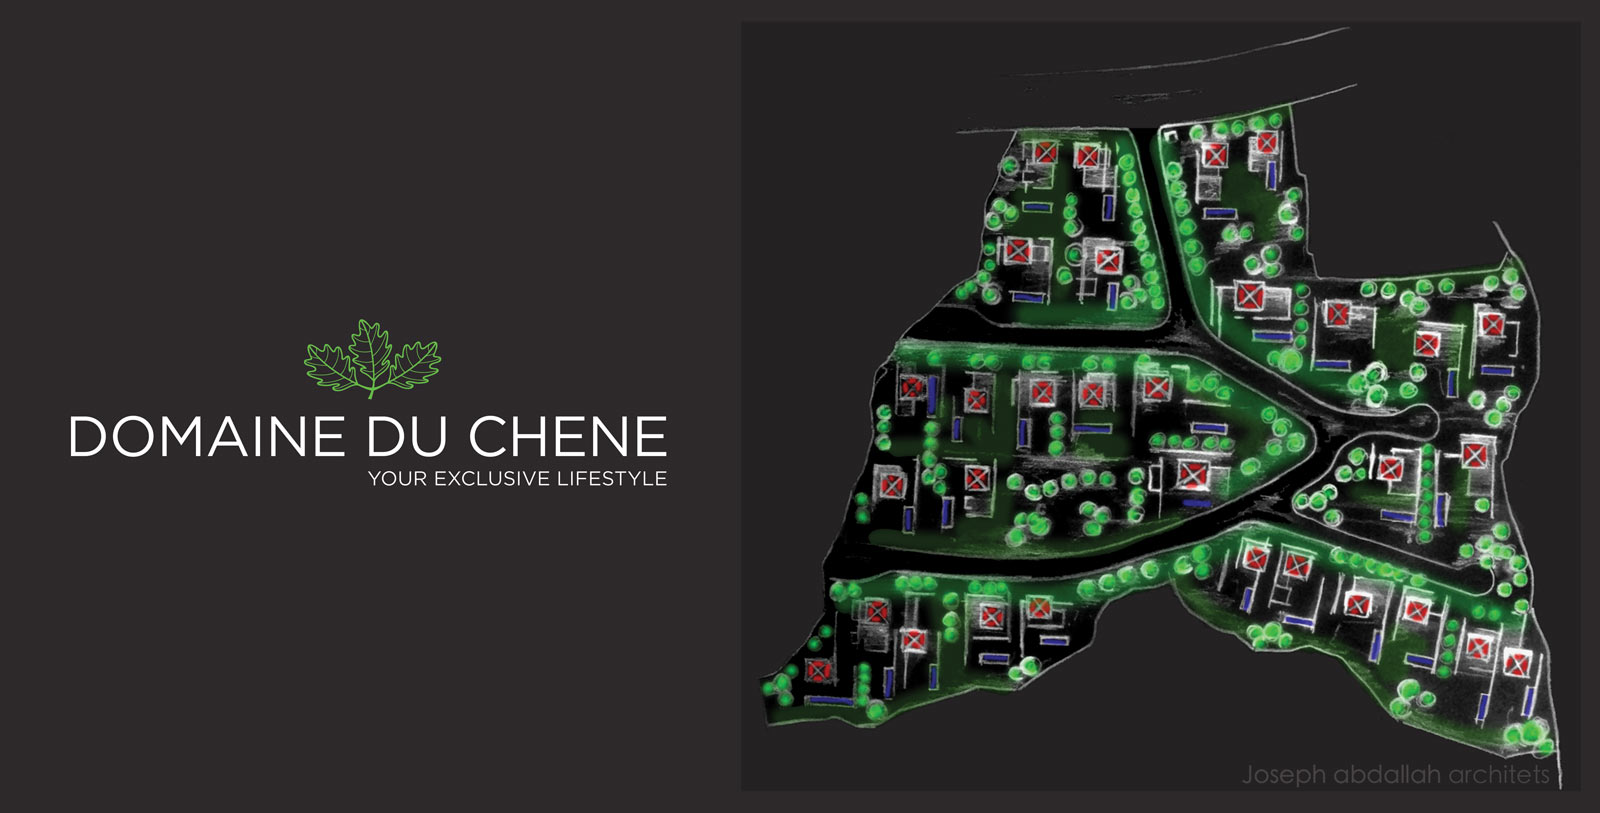 domaine-du-chene-lebanese-traditional-achitecture-mass-plan-joseph-abdallah-architects